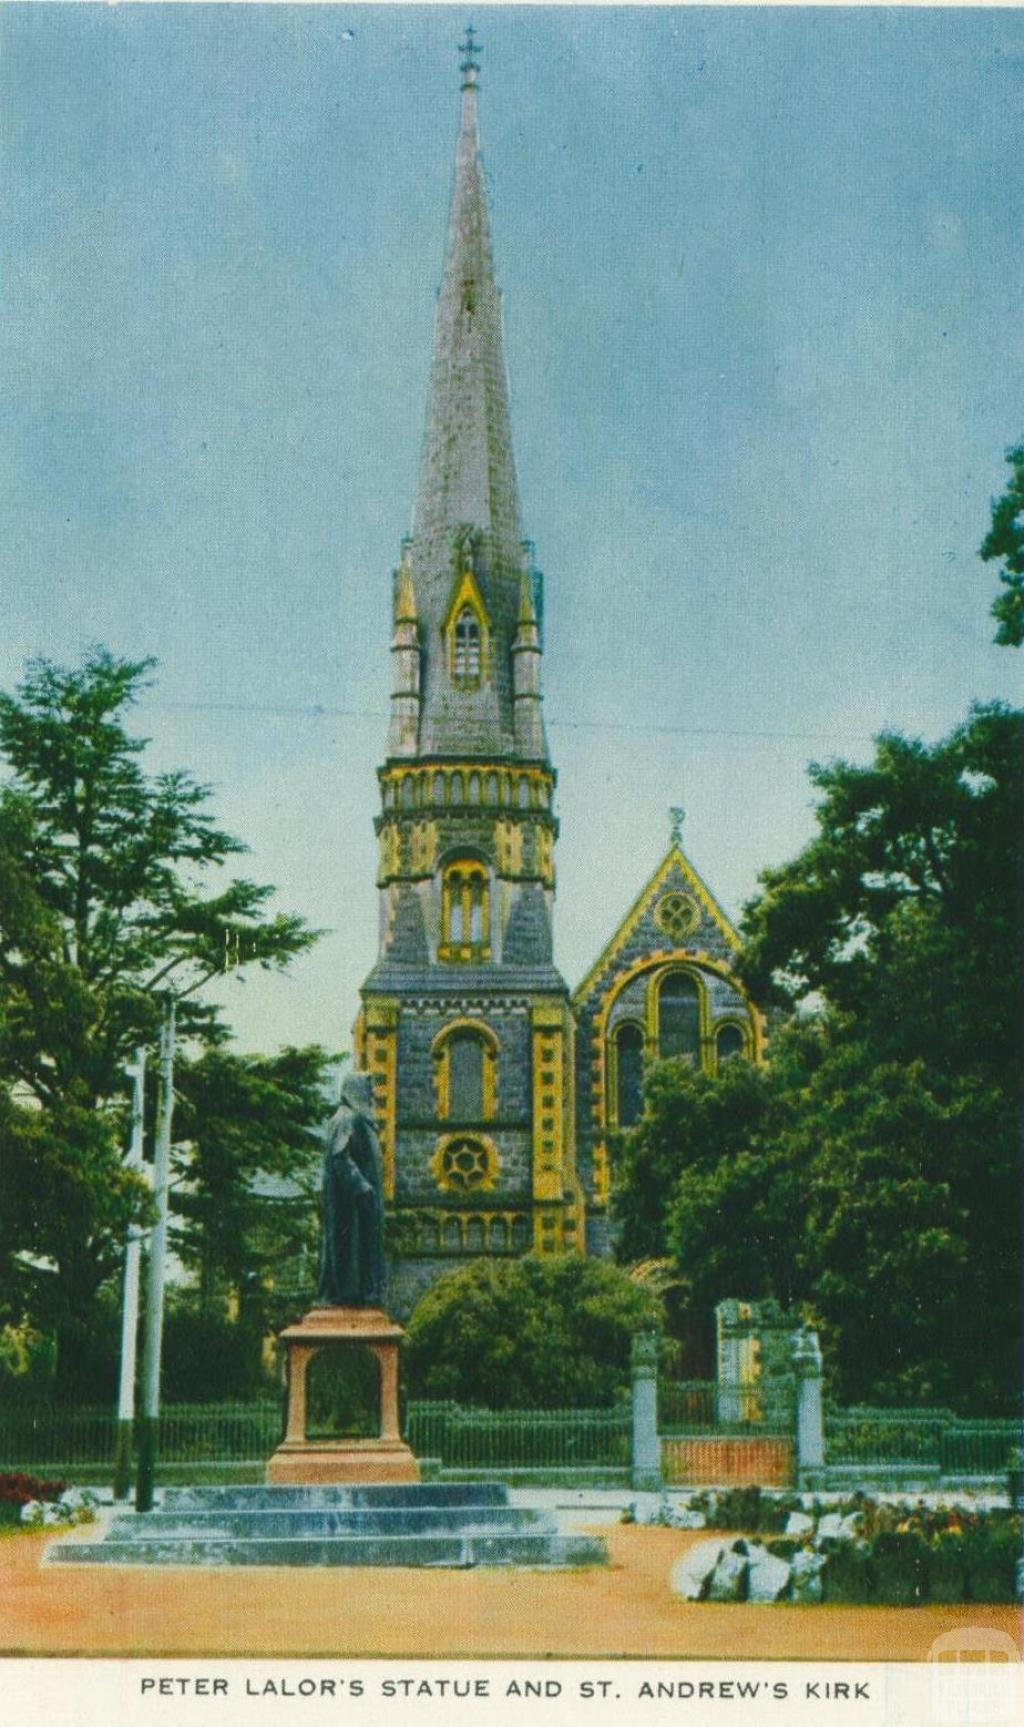 Peter Lalor's Statue and St Andrew's Kirk, Ballarat, 1958